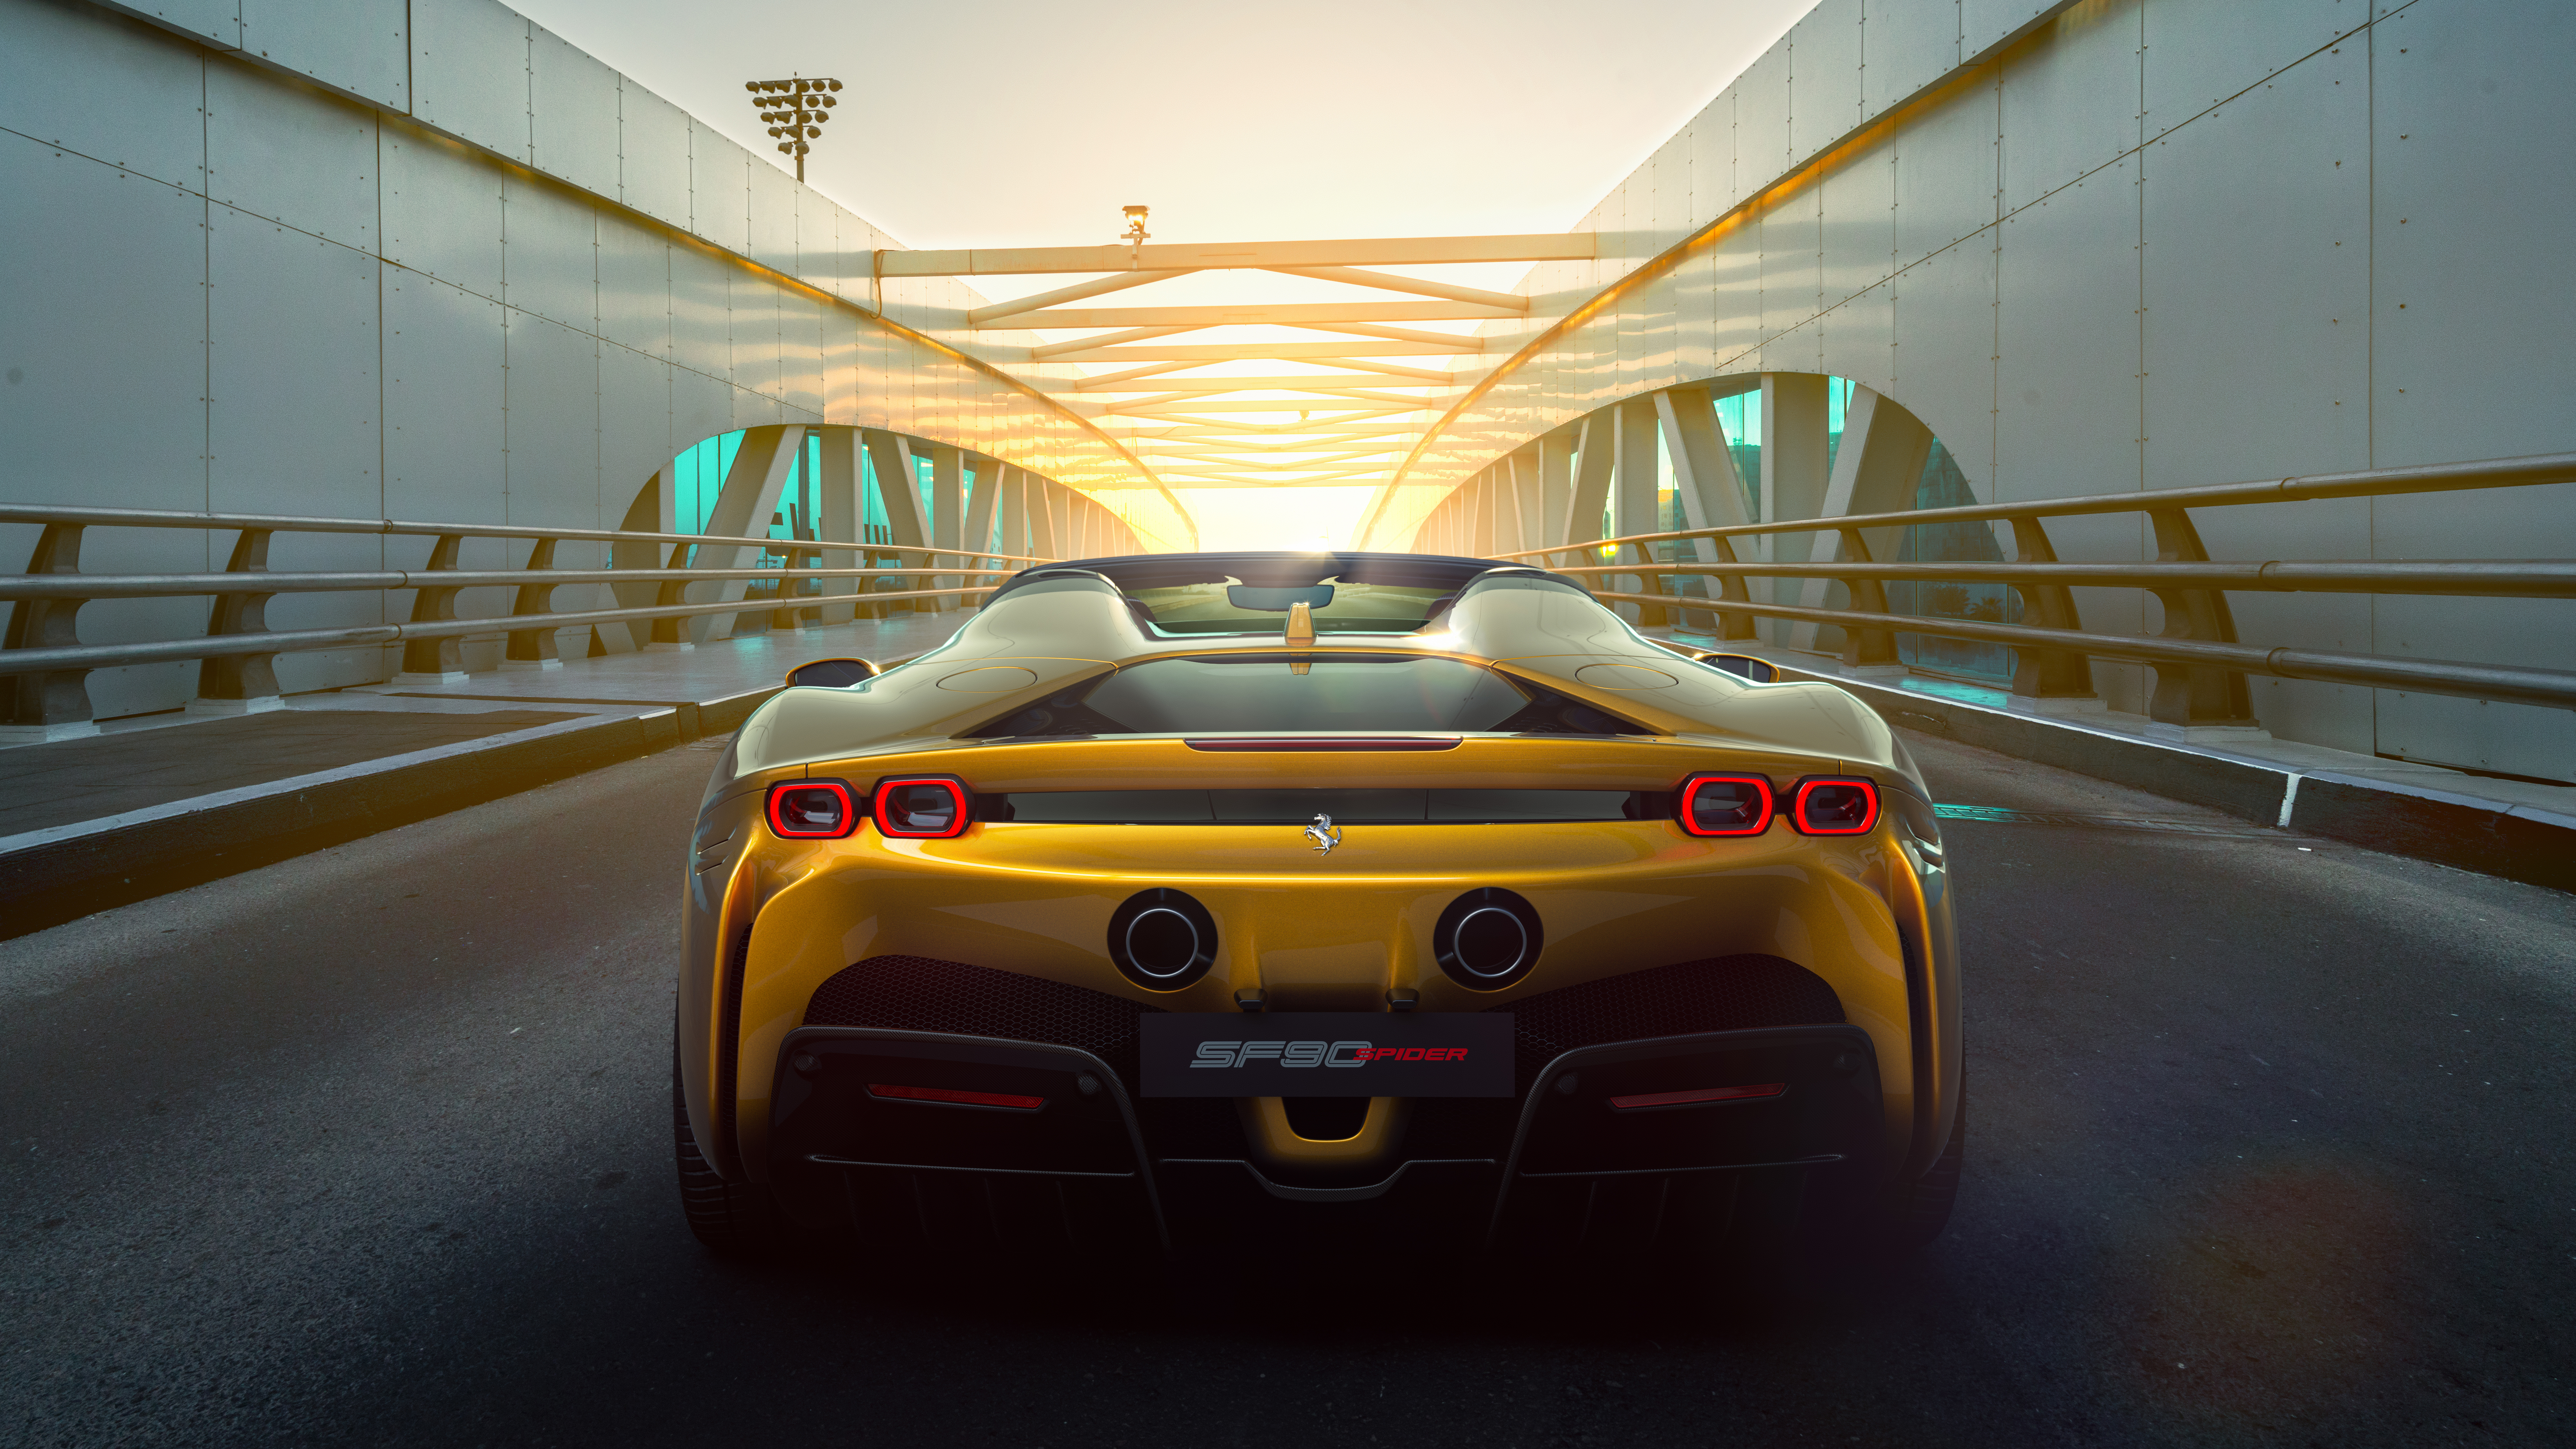 ferrari sf90 spider 4k 1608909409 1 - Ferrari SF90 Spider 4k - Ferrari SF90 Spider 4k wallpapers